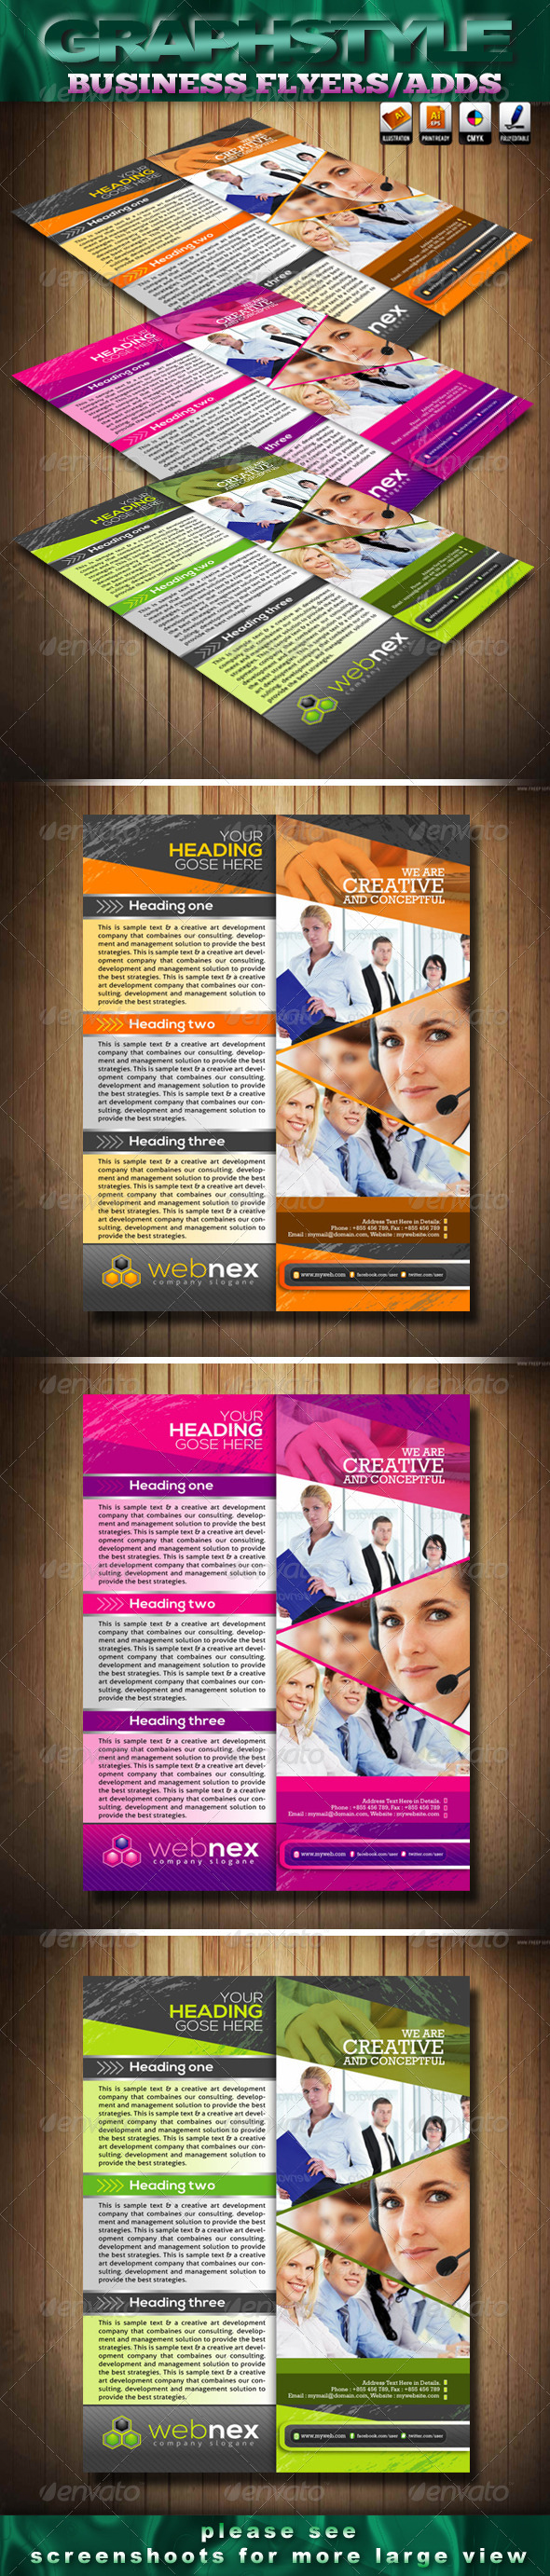 Webnex Business Flyers/Adds - Corporate Flyers